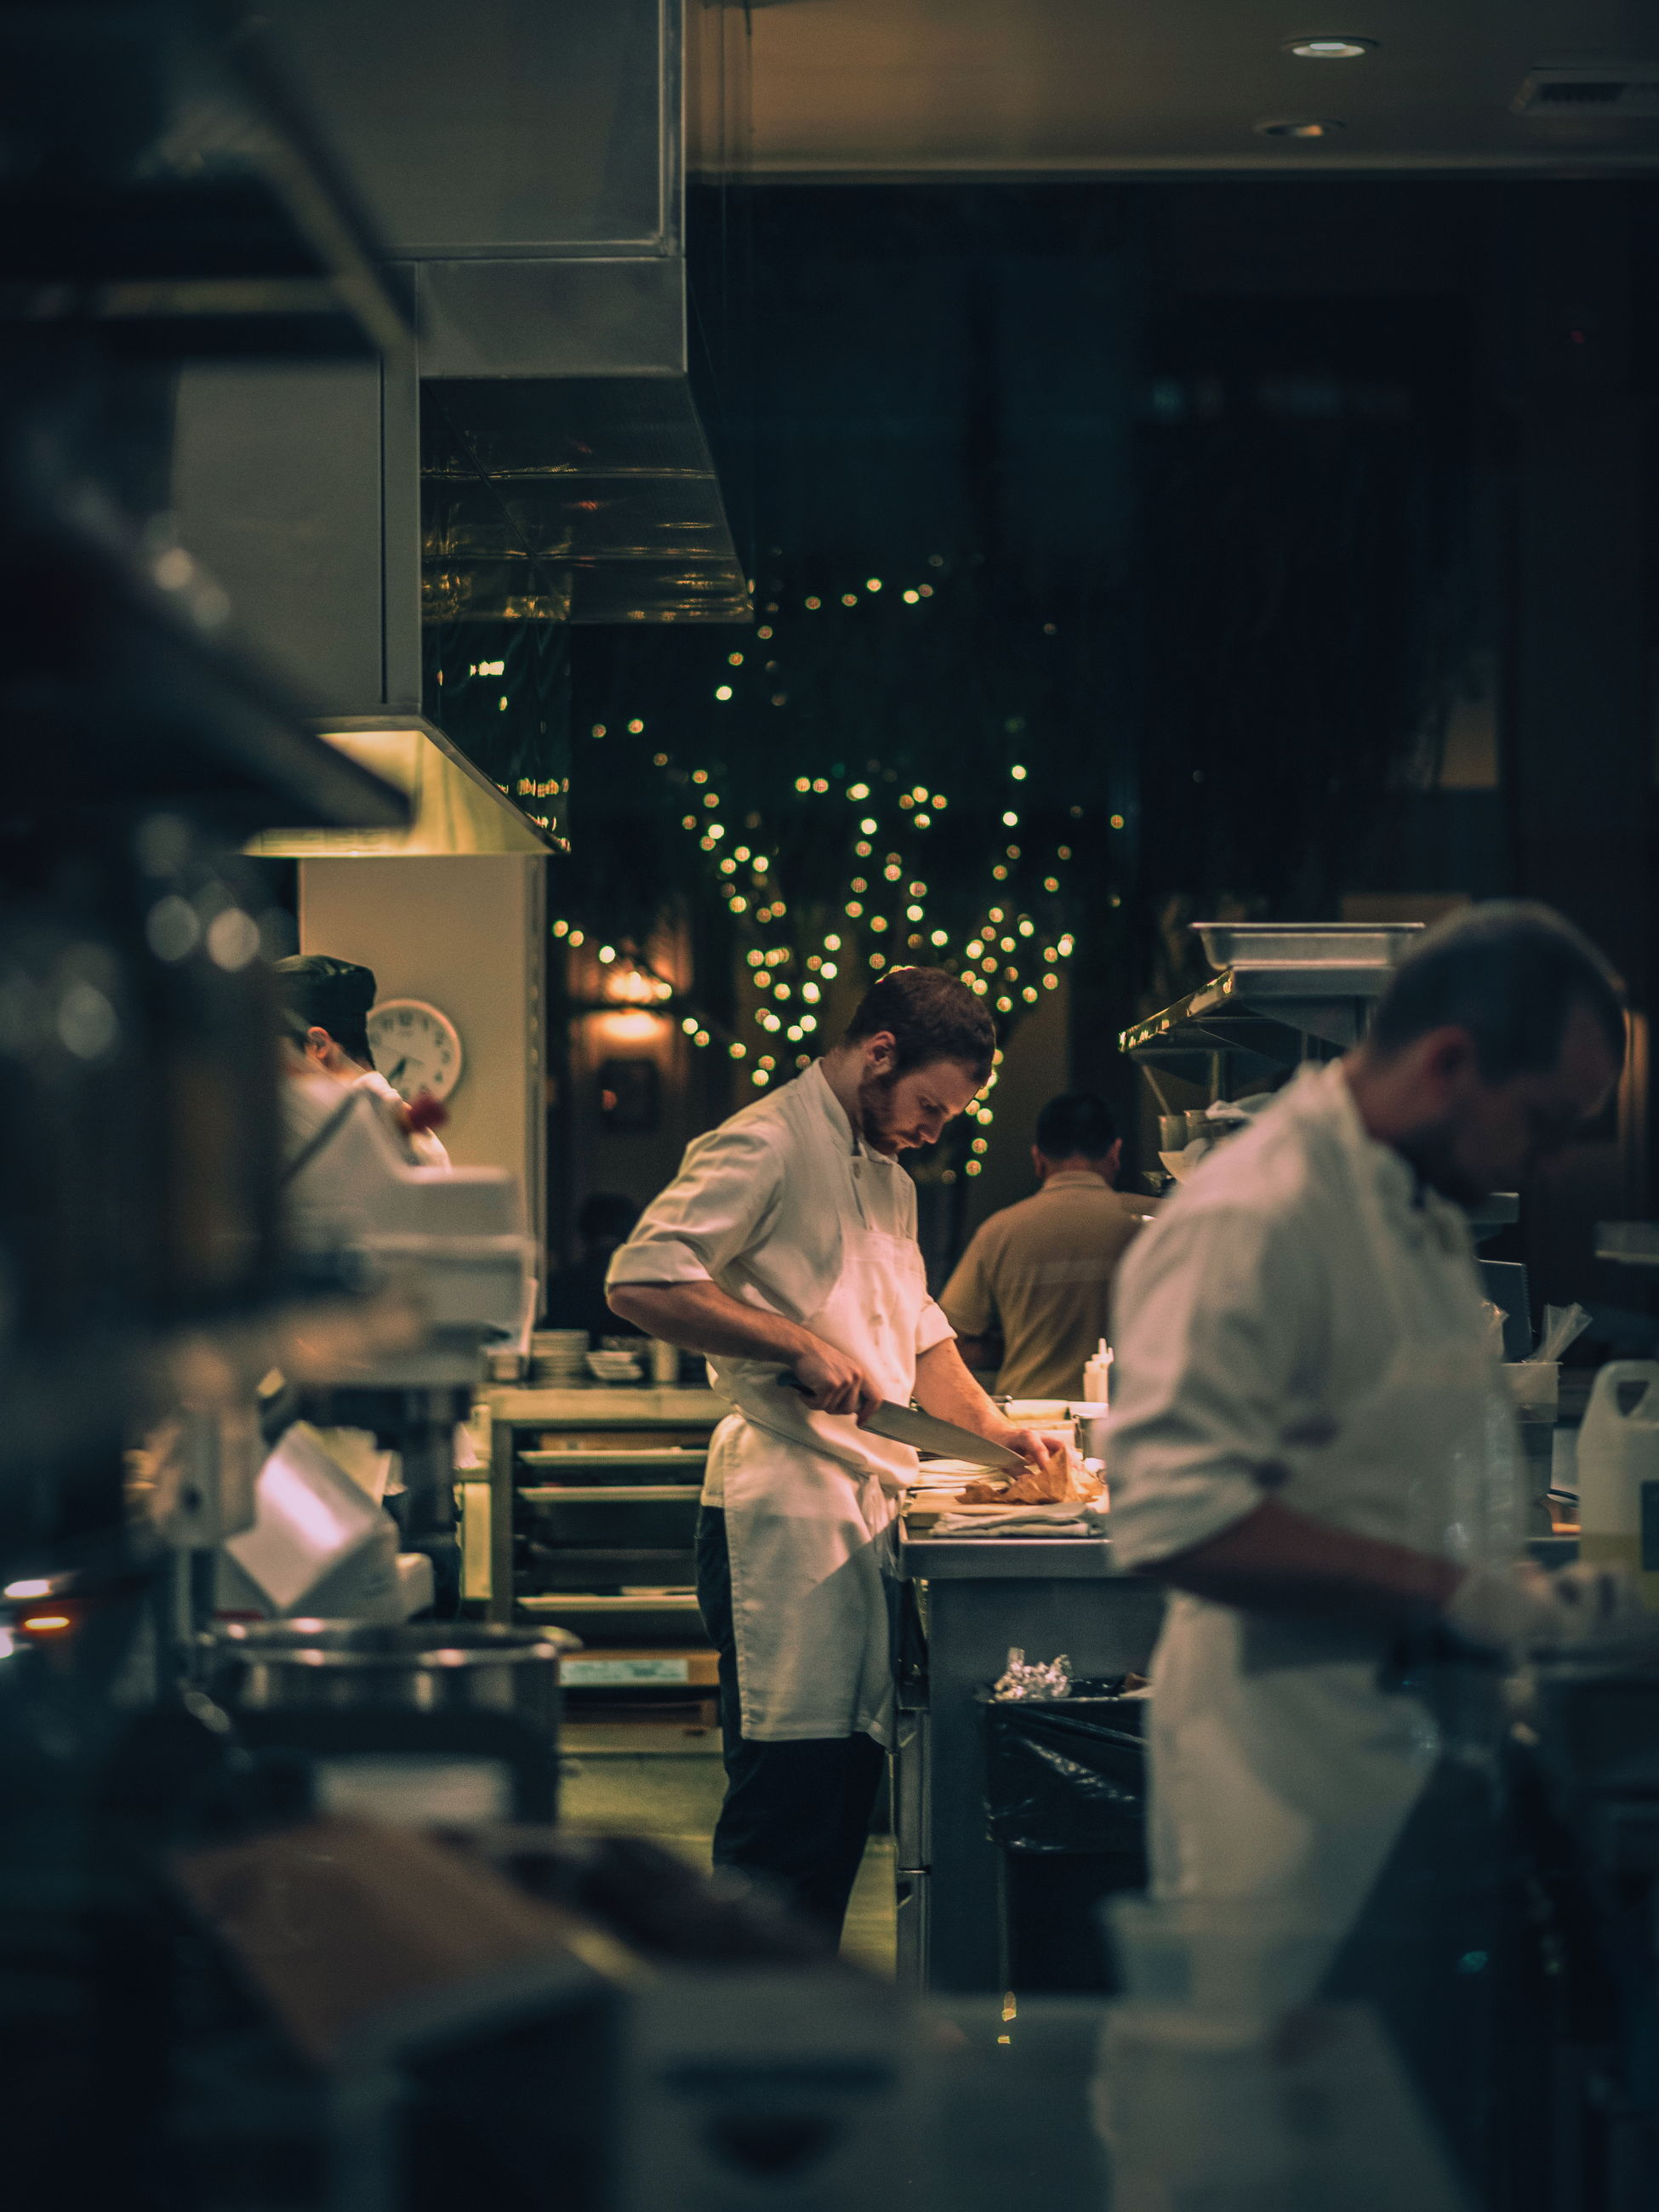 real people, mid adult men, restaurant, indoors, standing, food and drink industry, men, coworker, uniform, young adult, occupation, two people, togetherness, night, bartender, illuminated, food and drink establishment, young women, commercial kitchen, working, teamwork, adult, people